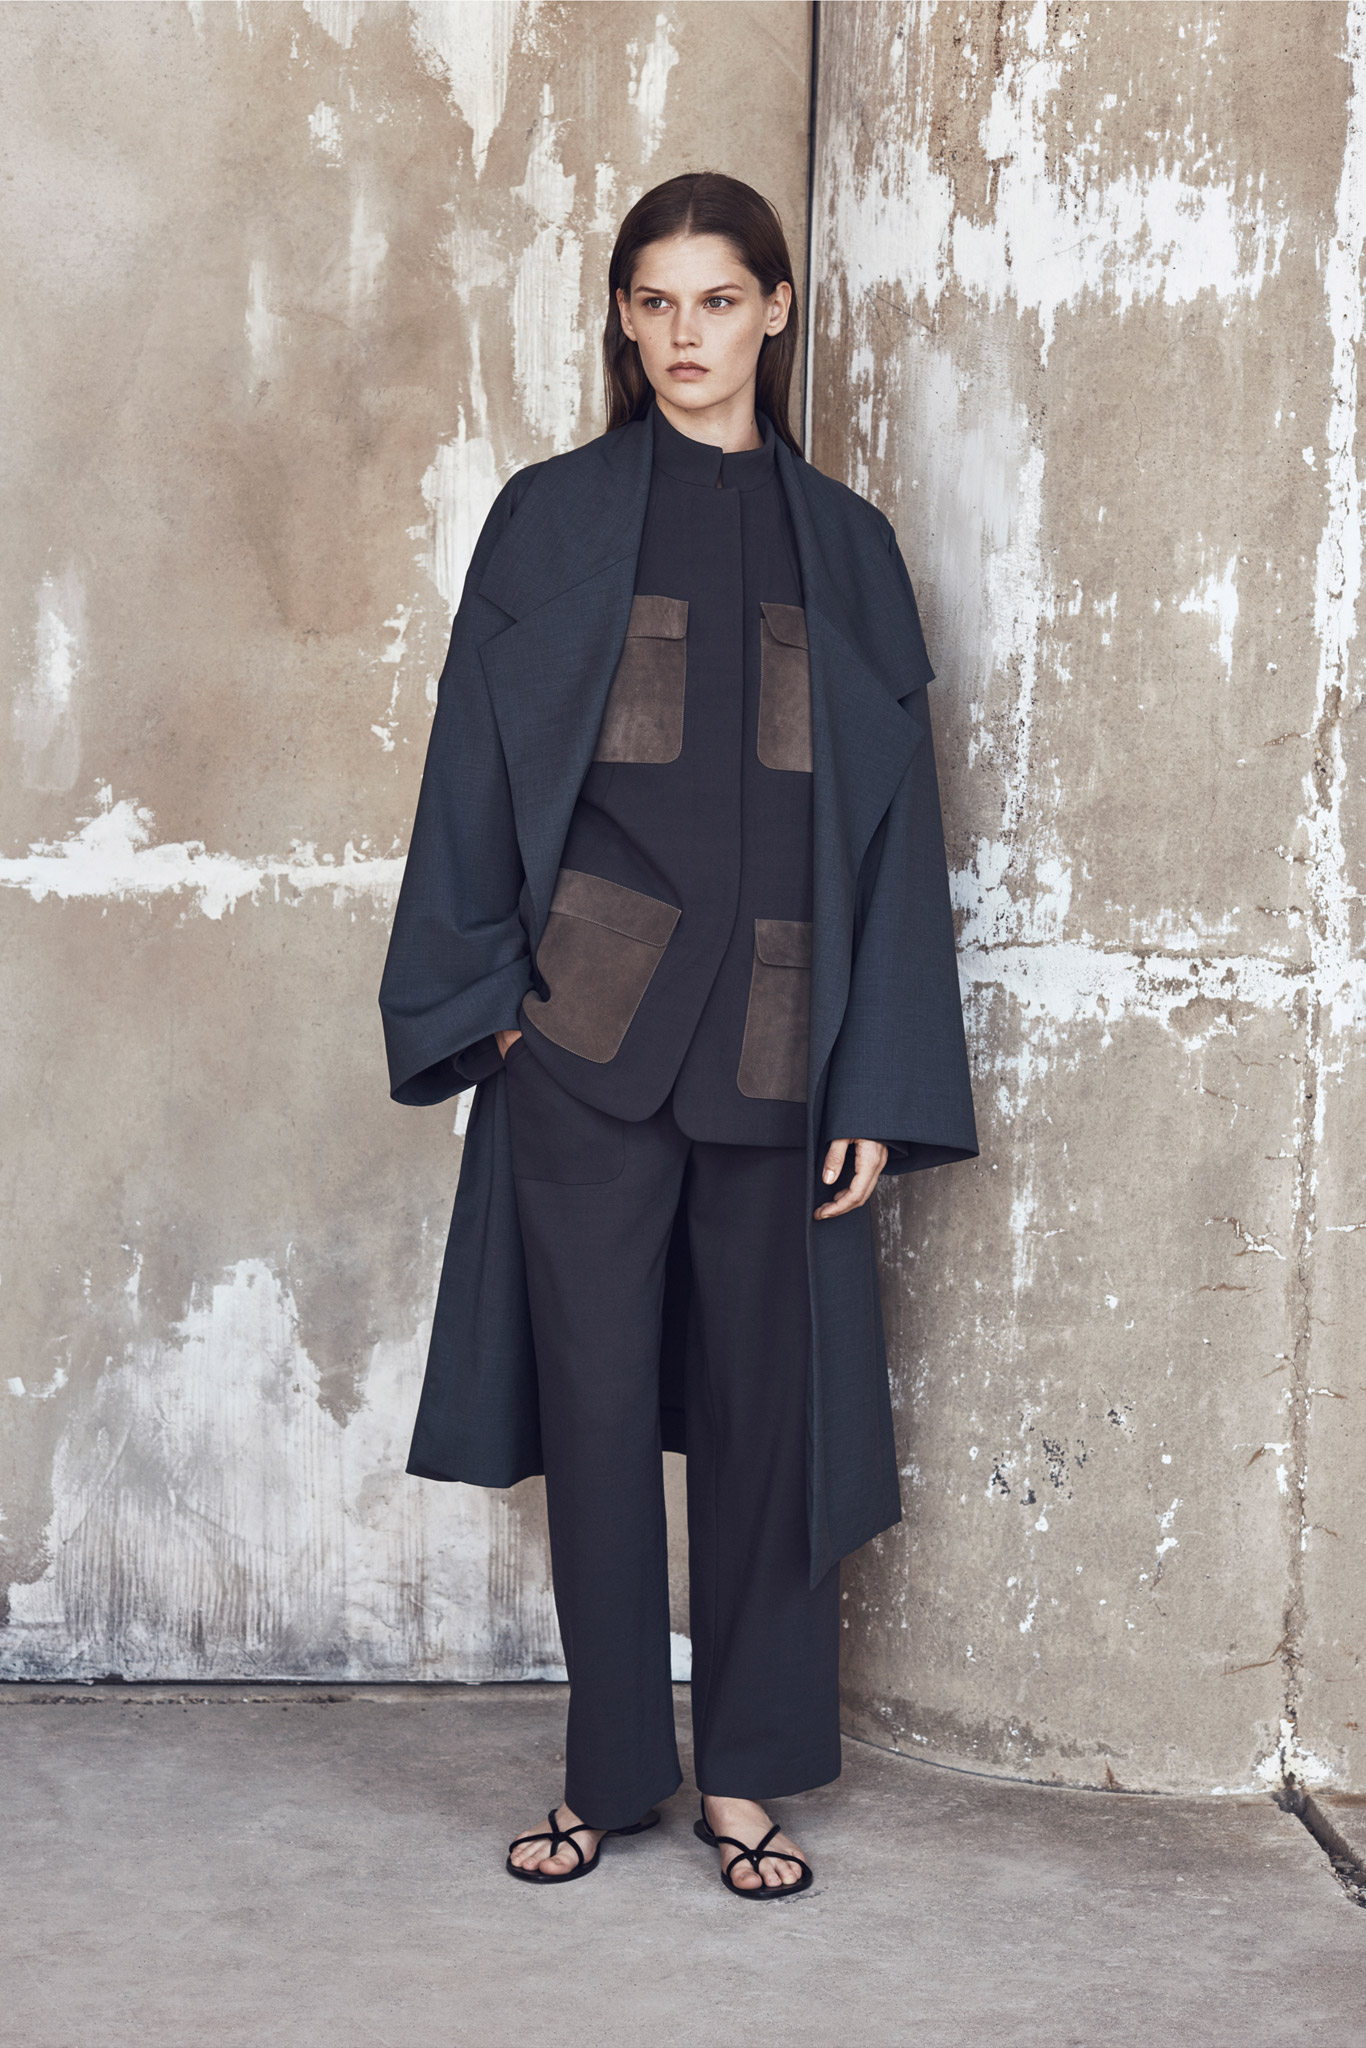 Trini blog | The Row Resort 2016